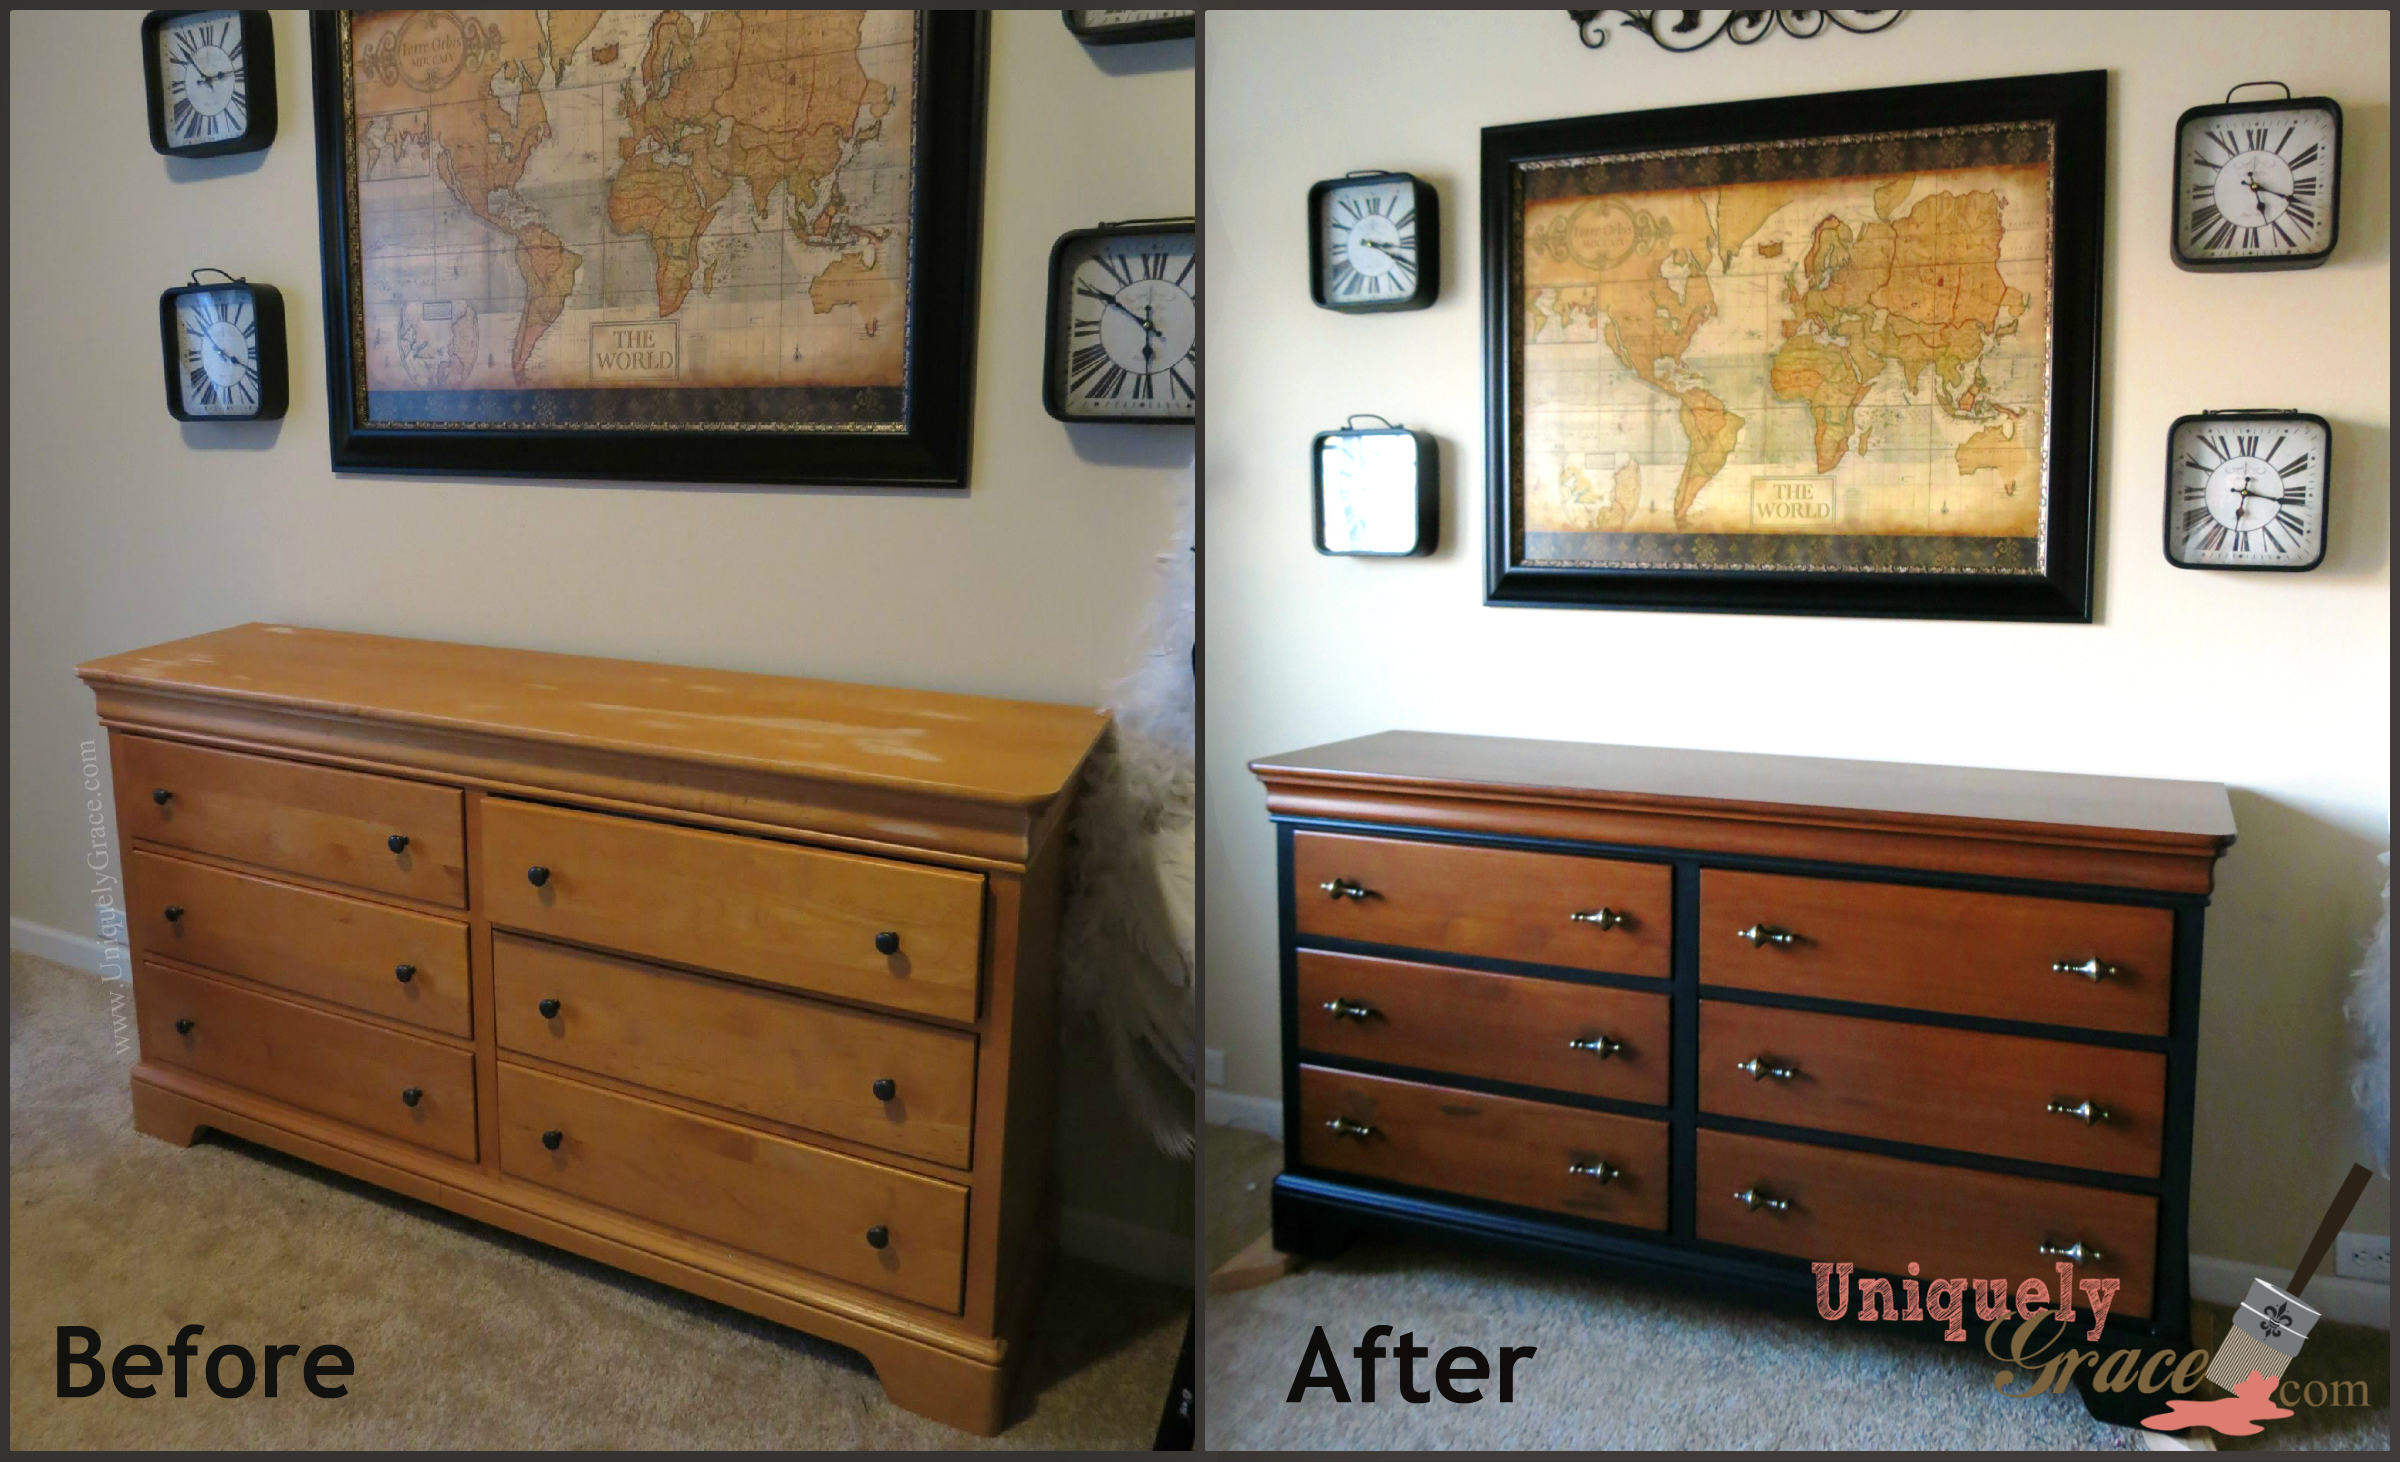 Refinished furniture gallery uniquely grace designs - Before and after old dressers makeover with a little paint ...